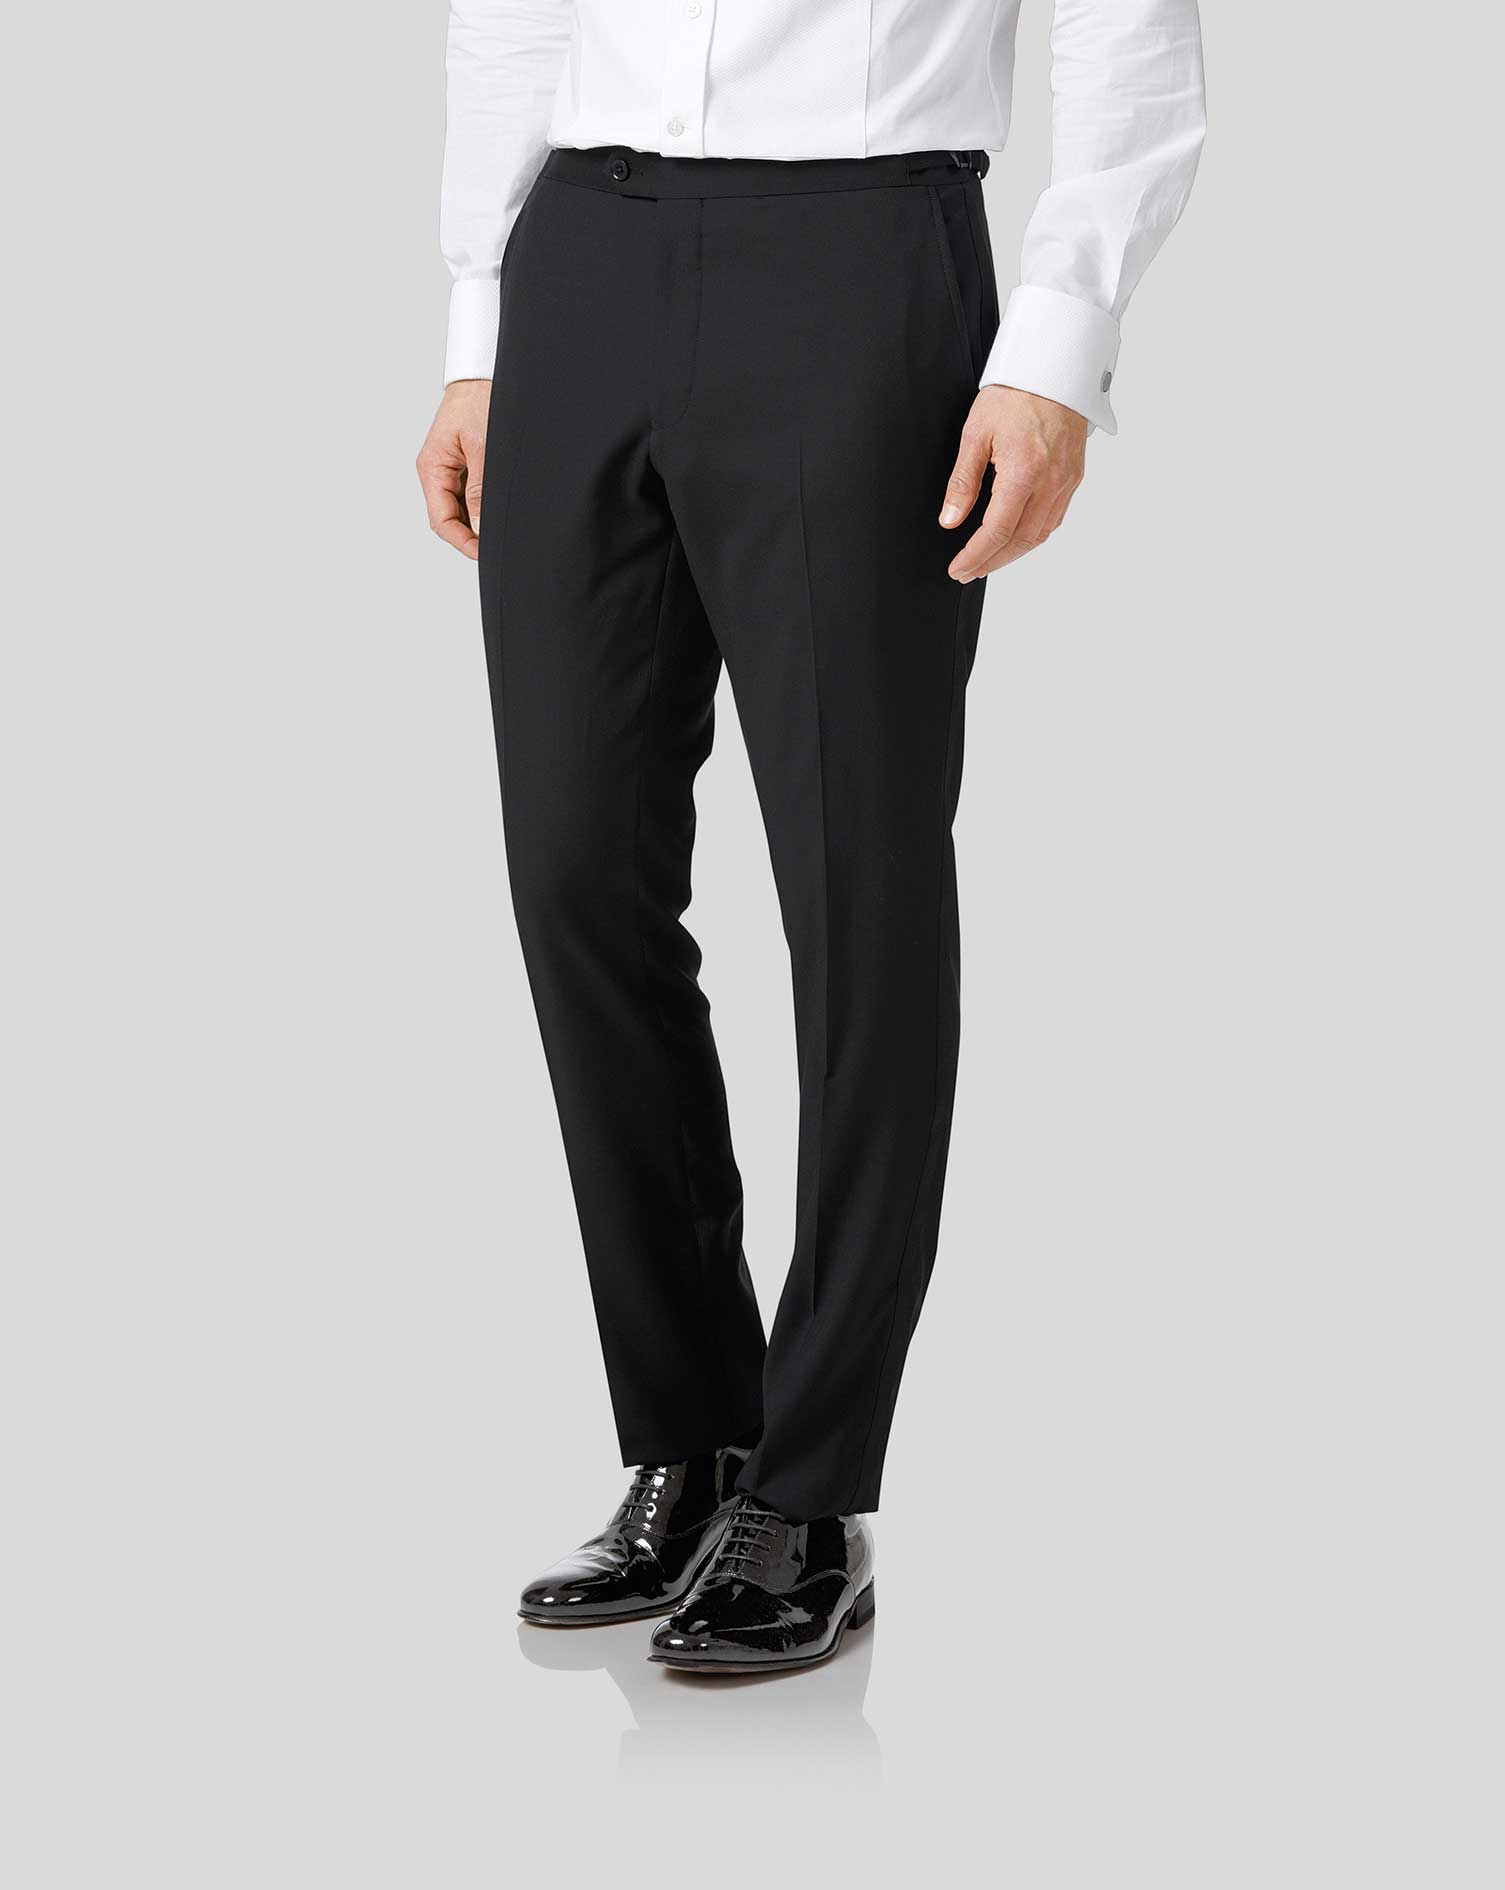 Black extra slim fit dinner suit pants